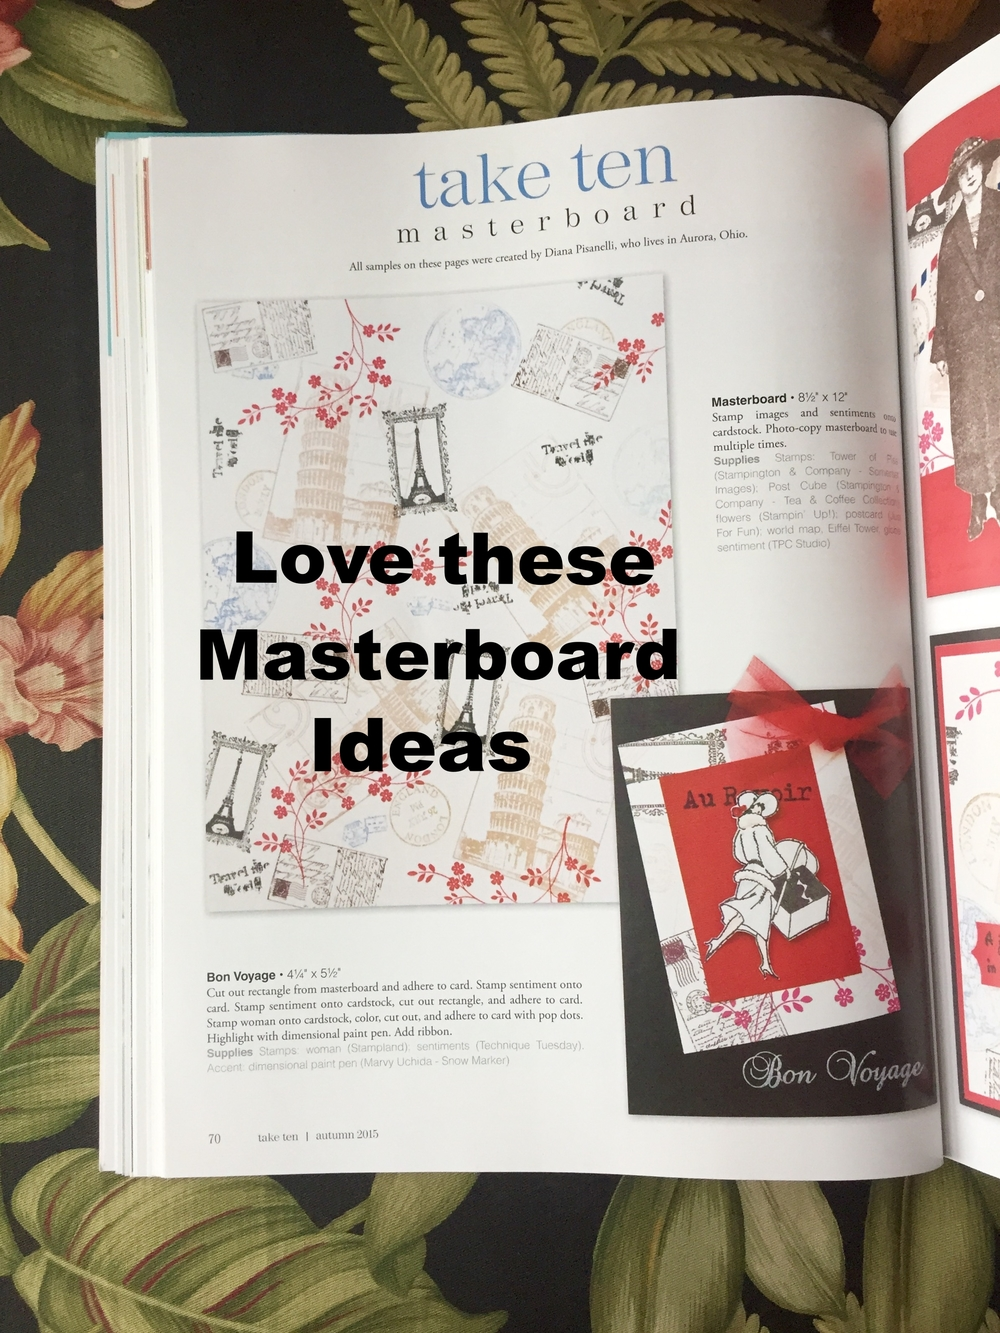 Masterboard